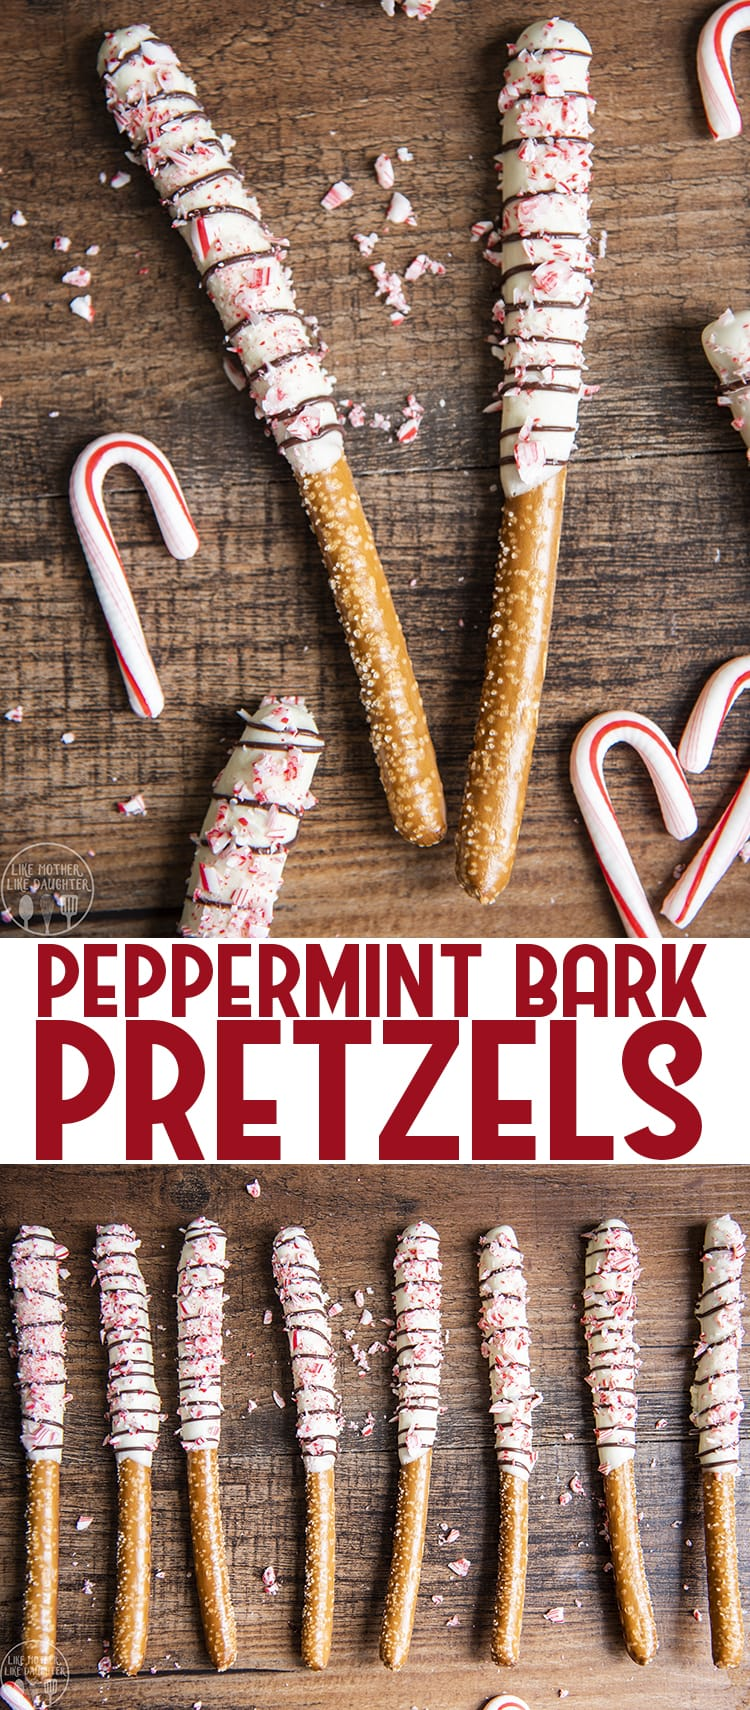 These delicious peppermint bark pretzels are a tasty sweet and salty holiday treat. With pretzel rods, coated in white chocolate, and a drizzle of chocolate, covered in crushed up candy cane pieces, for a delicious twist on peppermint bark candy.